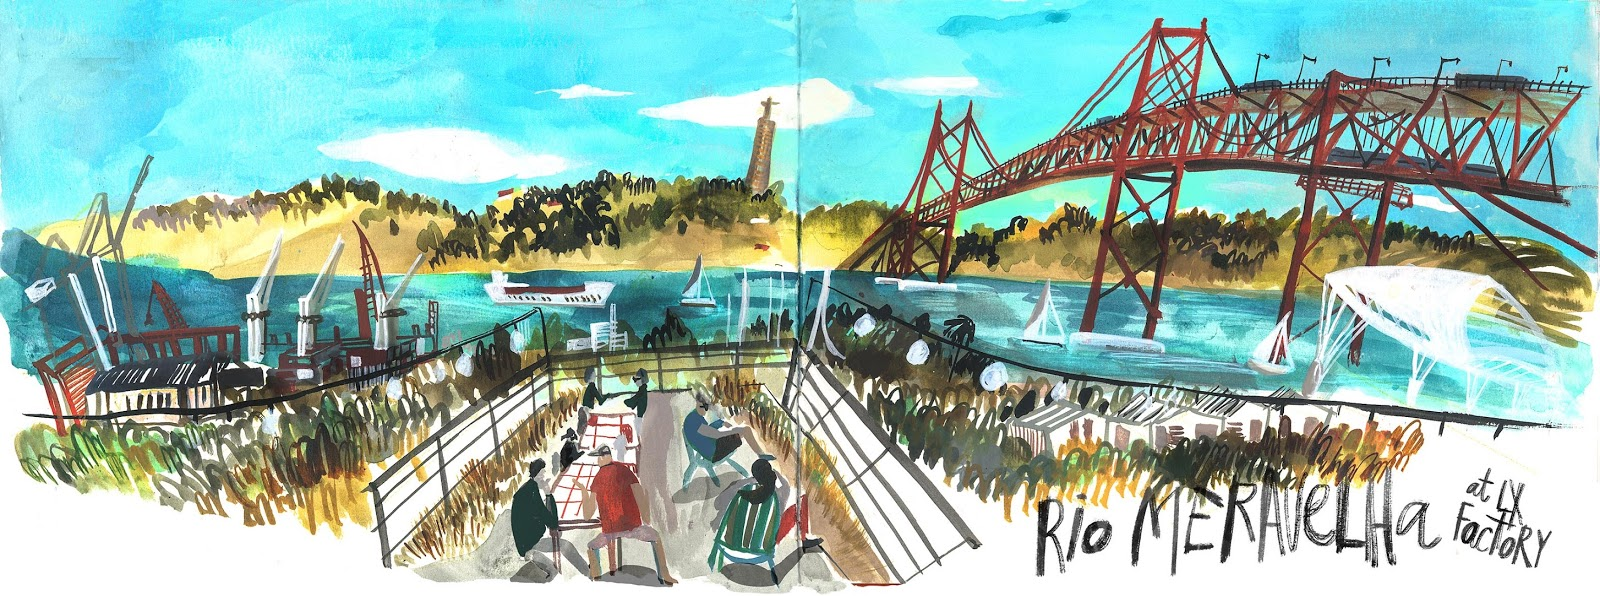 Big Gouache and Mixed Media Workshop: San Francisco | Urban Sketchers